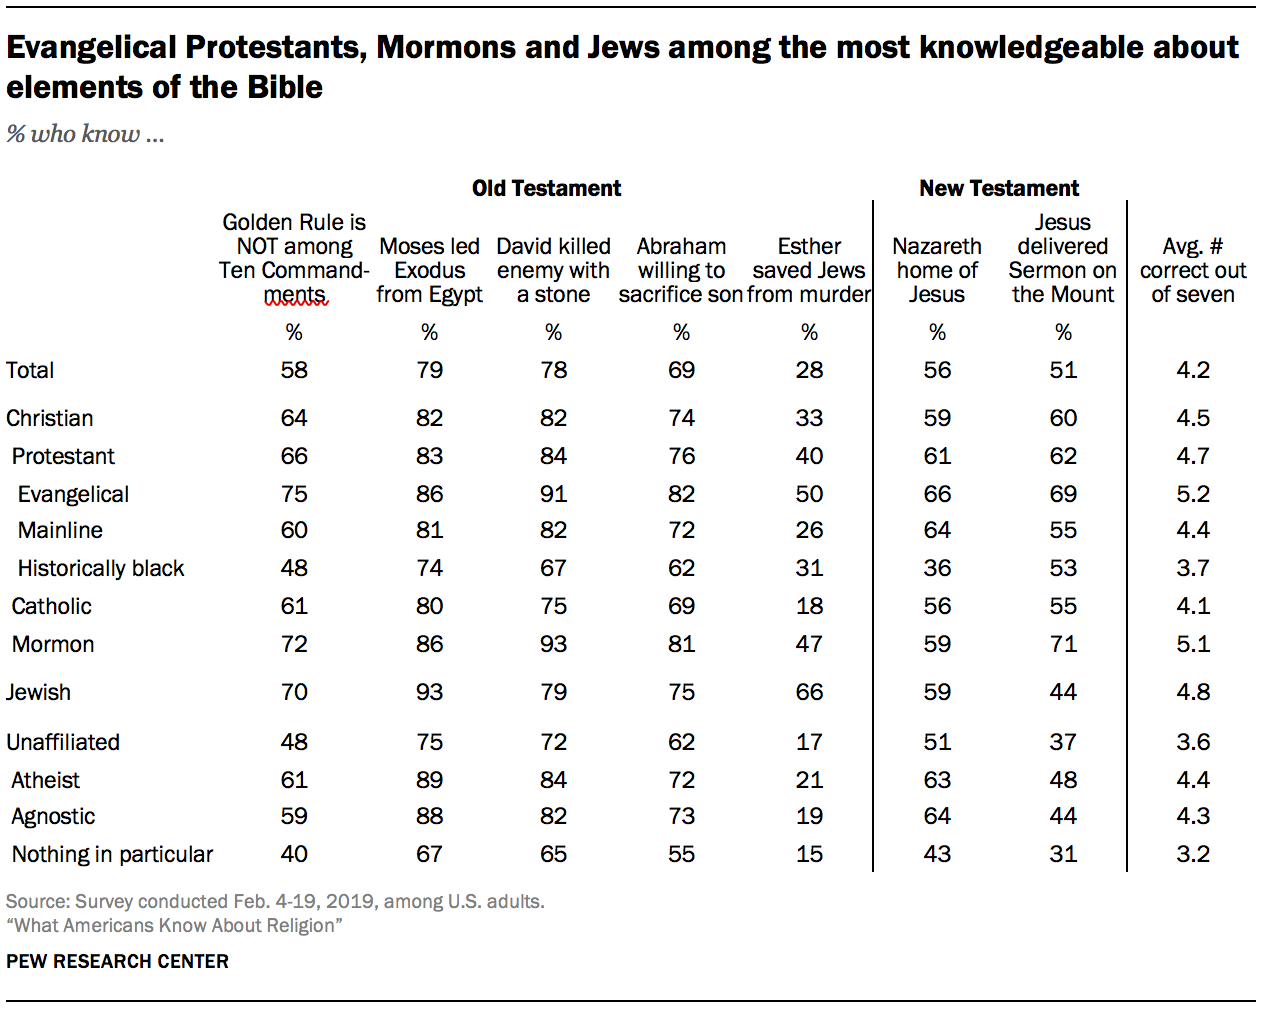 Evangelical Protestants, Mormons and Jews among the most knowledgeable about elements of the Bible